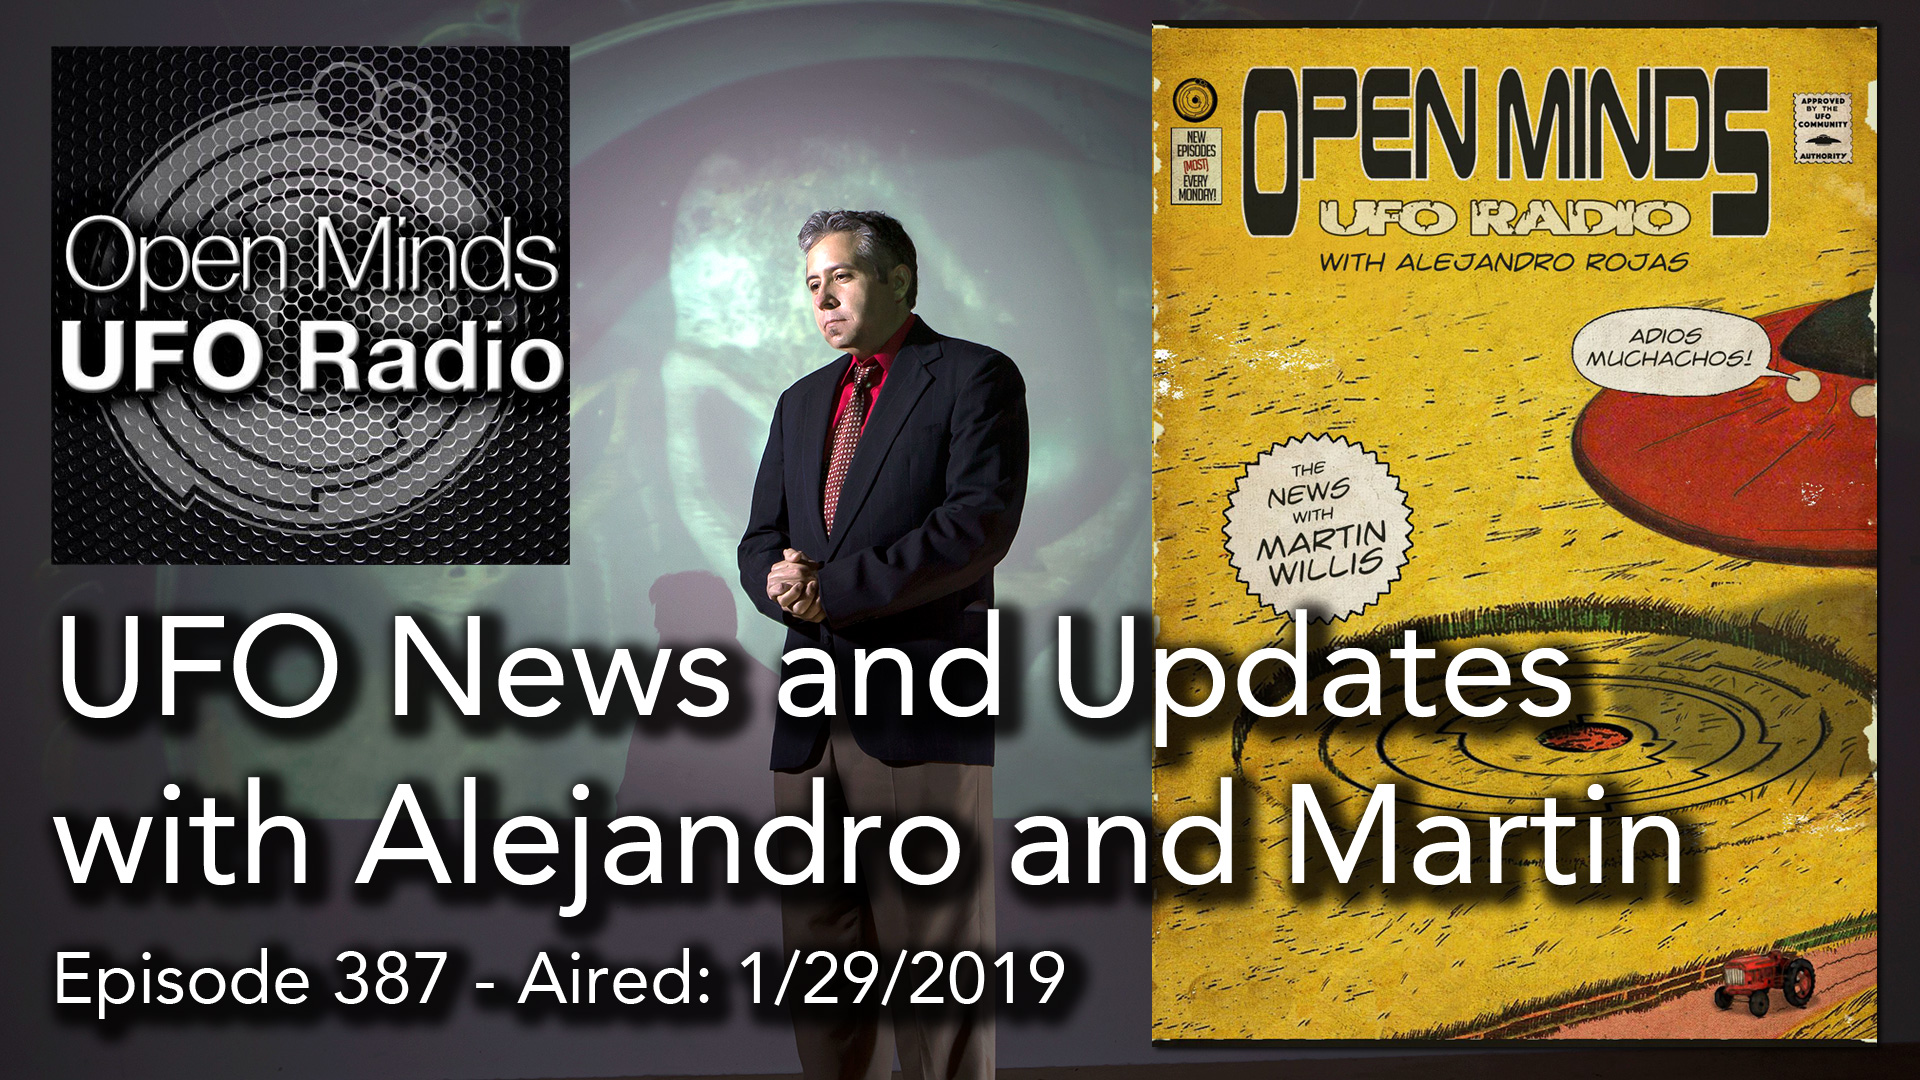 UFO News on Open Minds UFO Radio